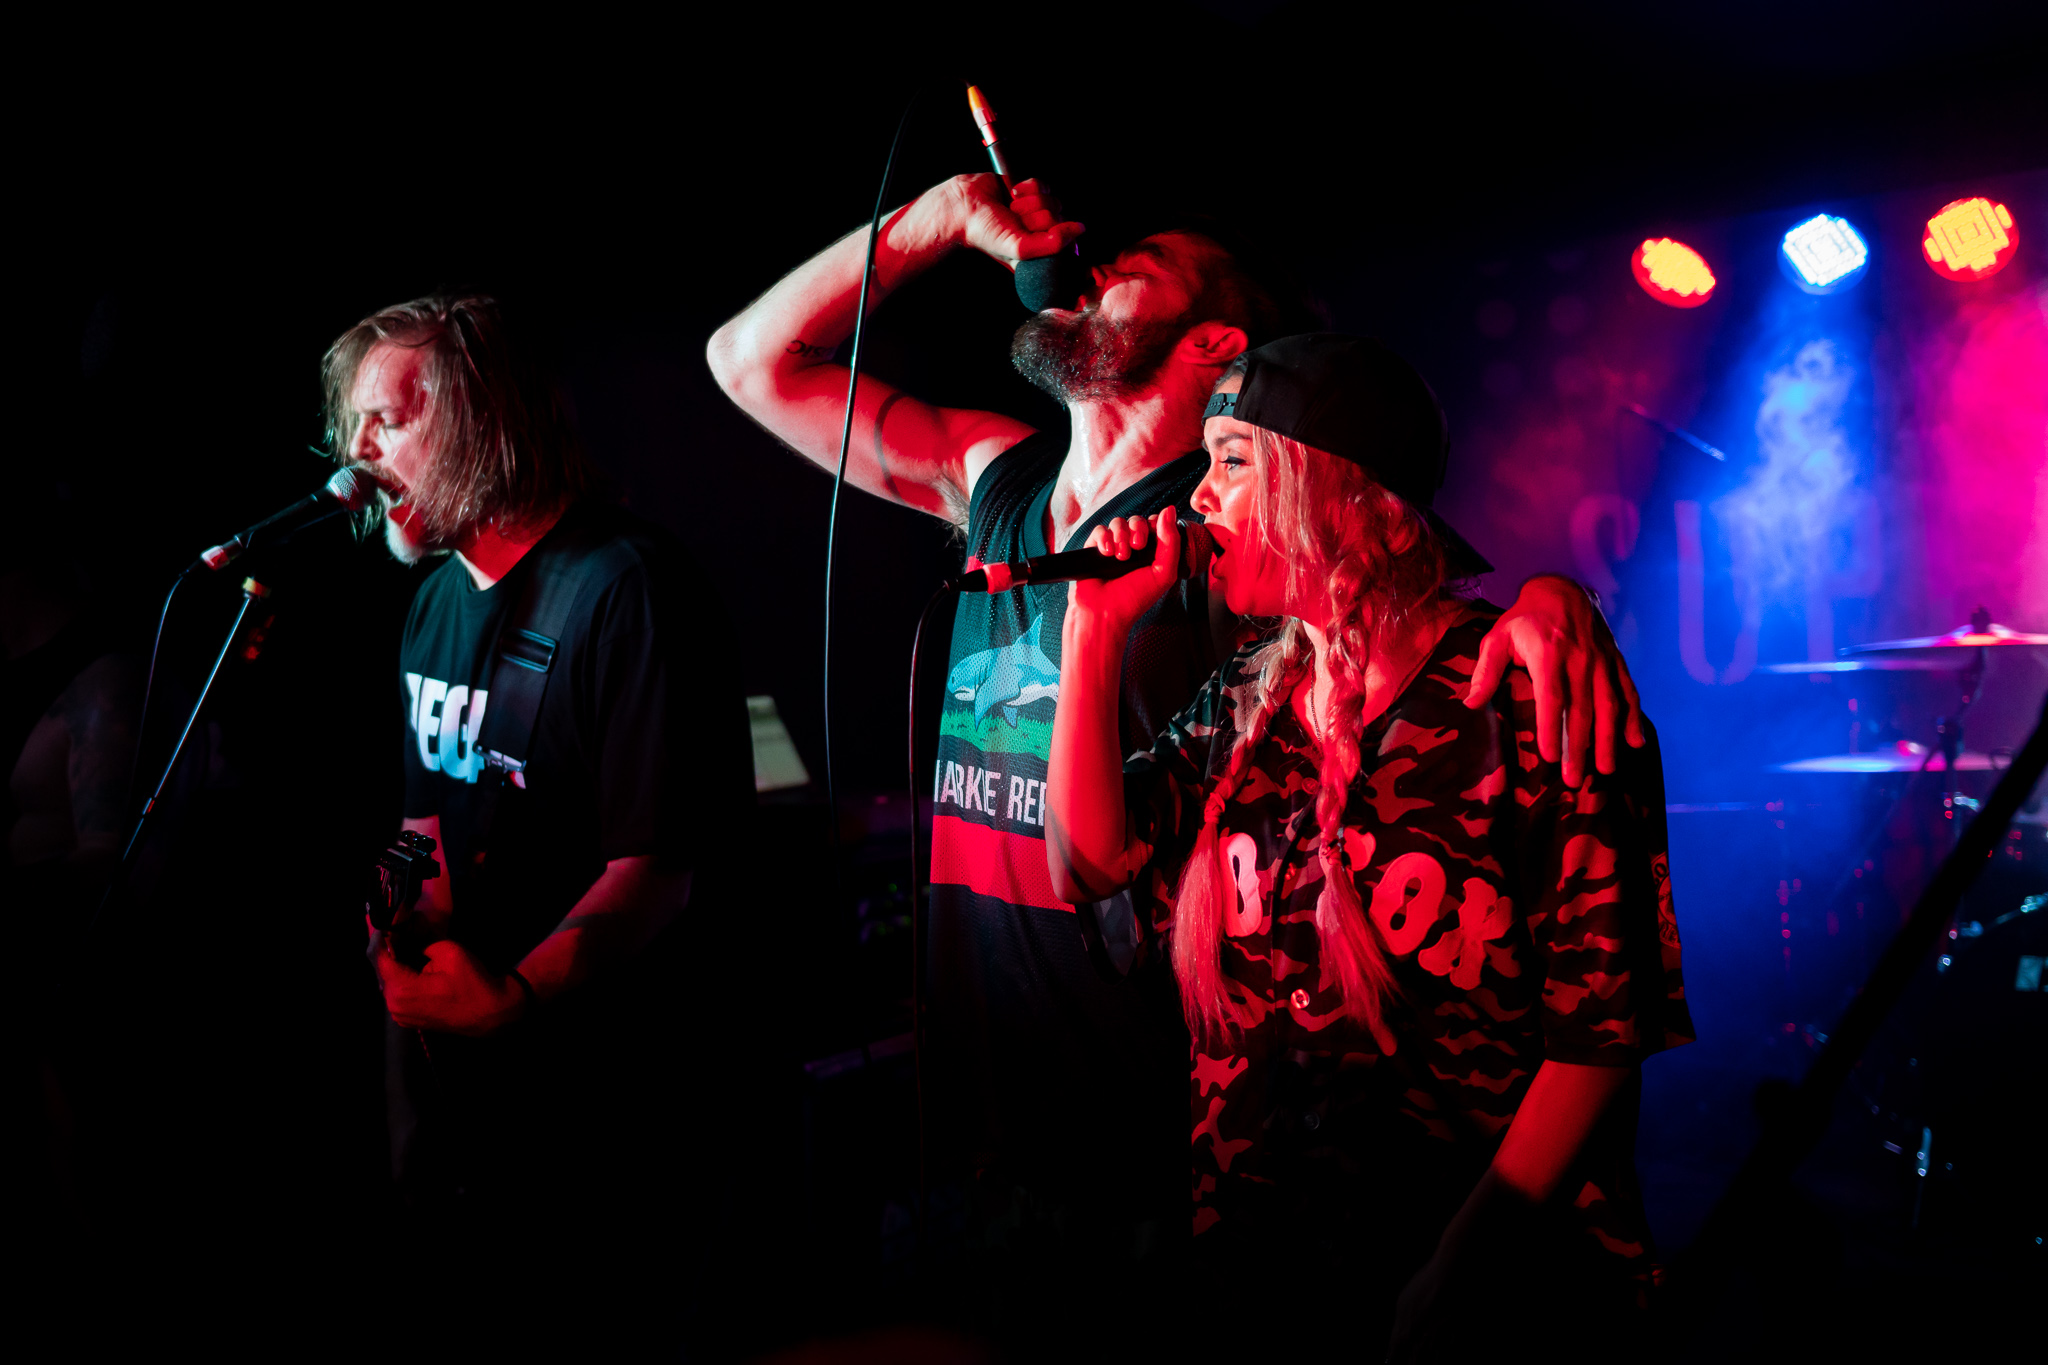 Check out the full photo gallery of Heist Fest in Frankston by Christopher Lowe   here.